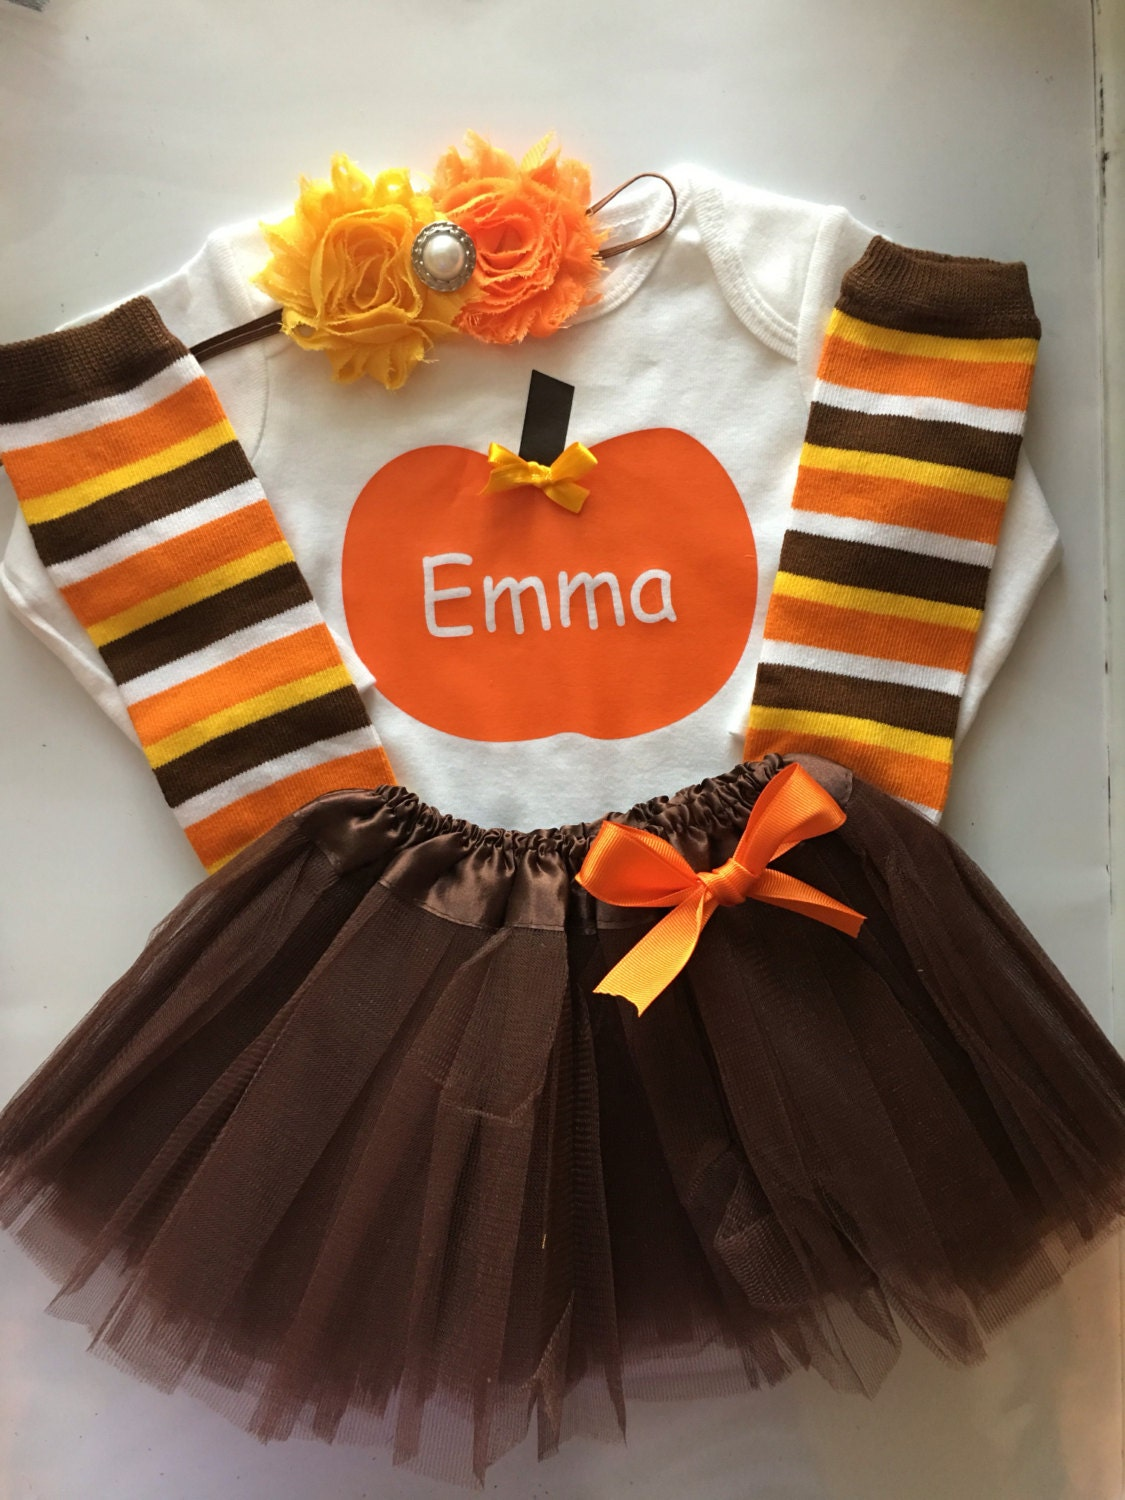 fea09ced1 Baby girl Thanksgiving outfit - Baby girl fall outfit - baby fall clothes